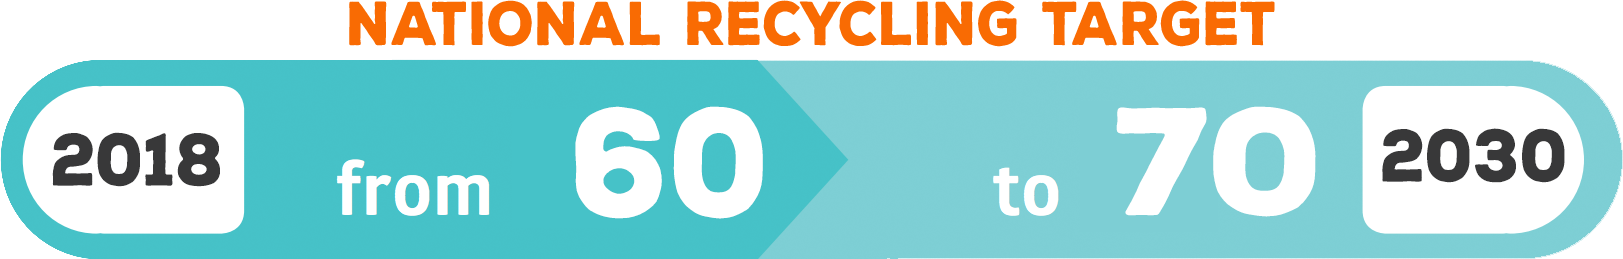 Our recycling targets for 2030